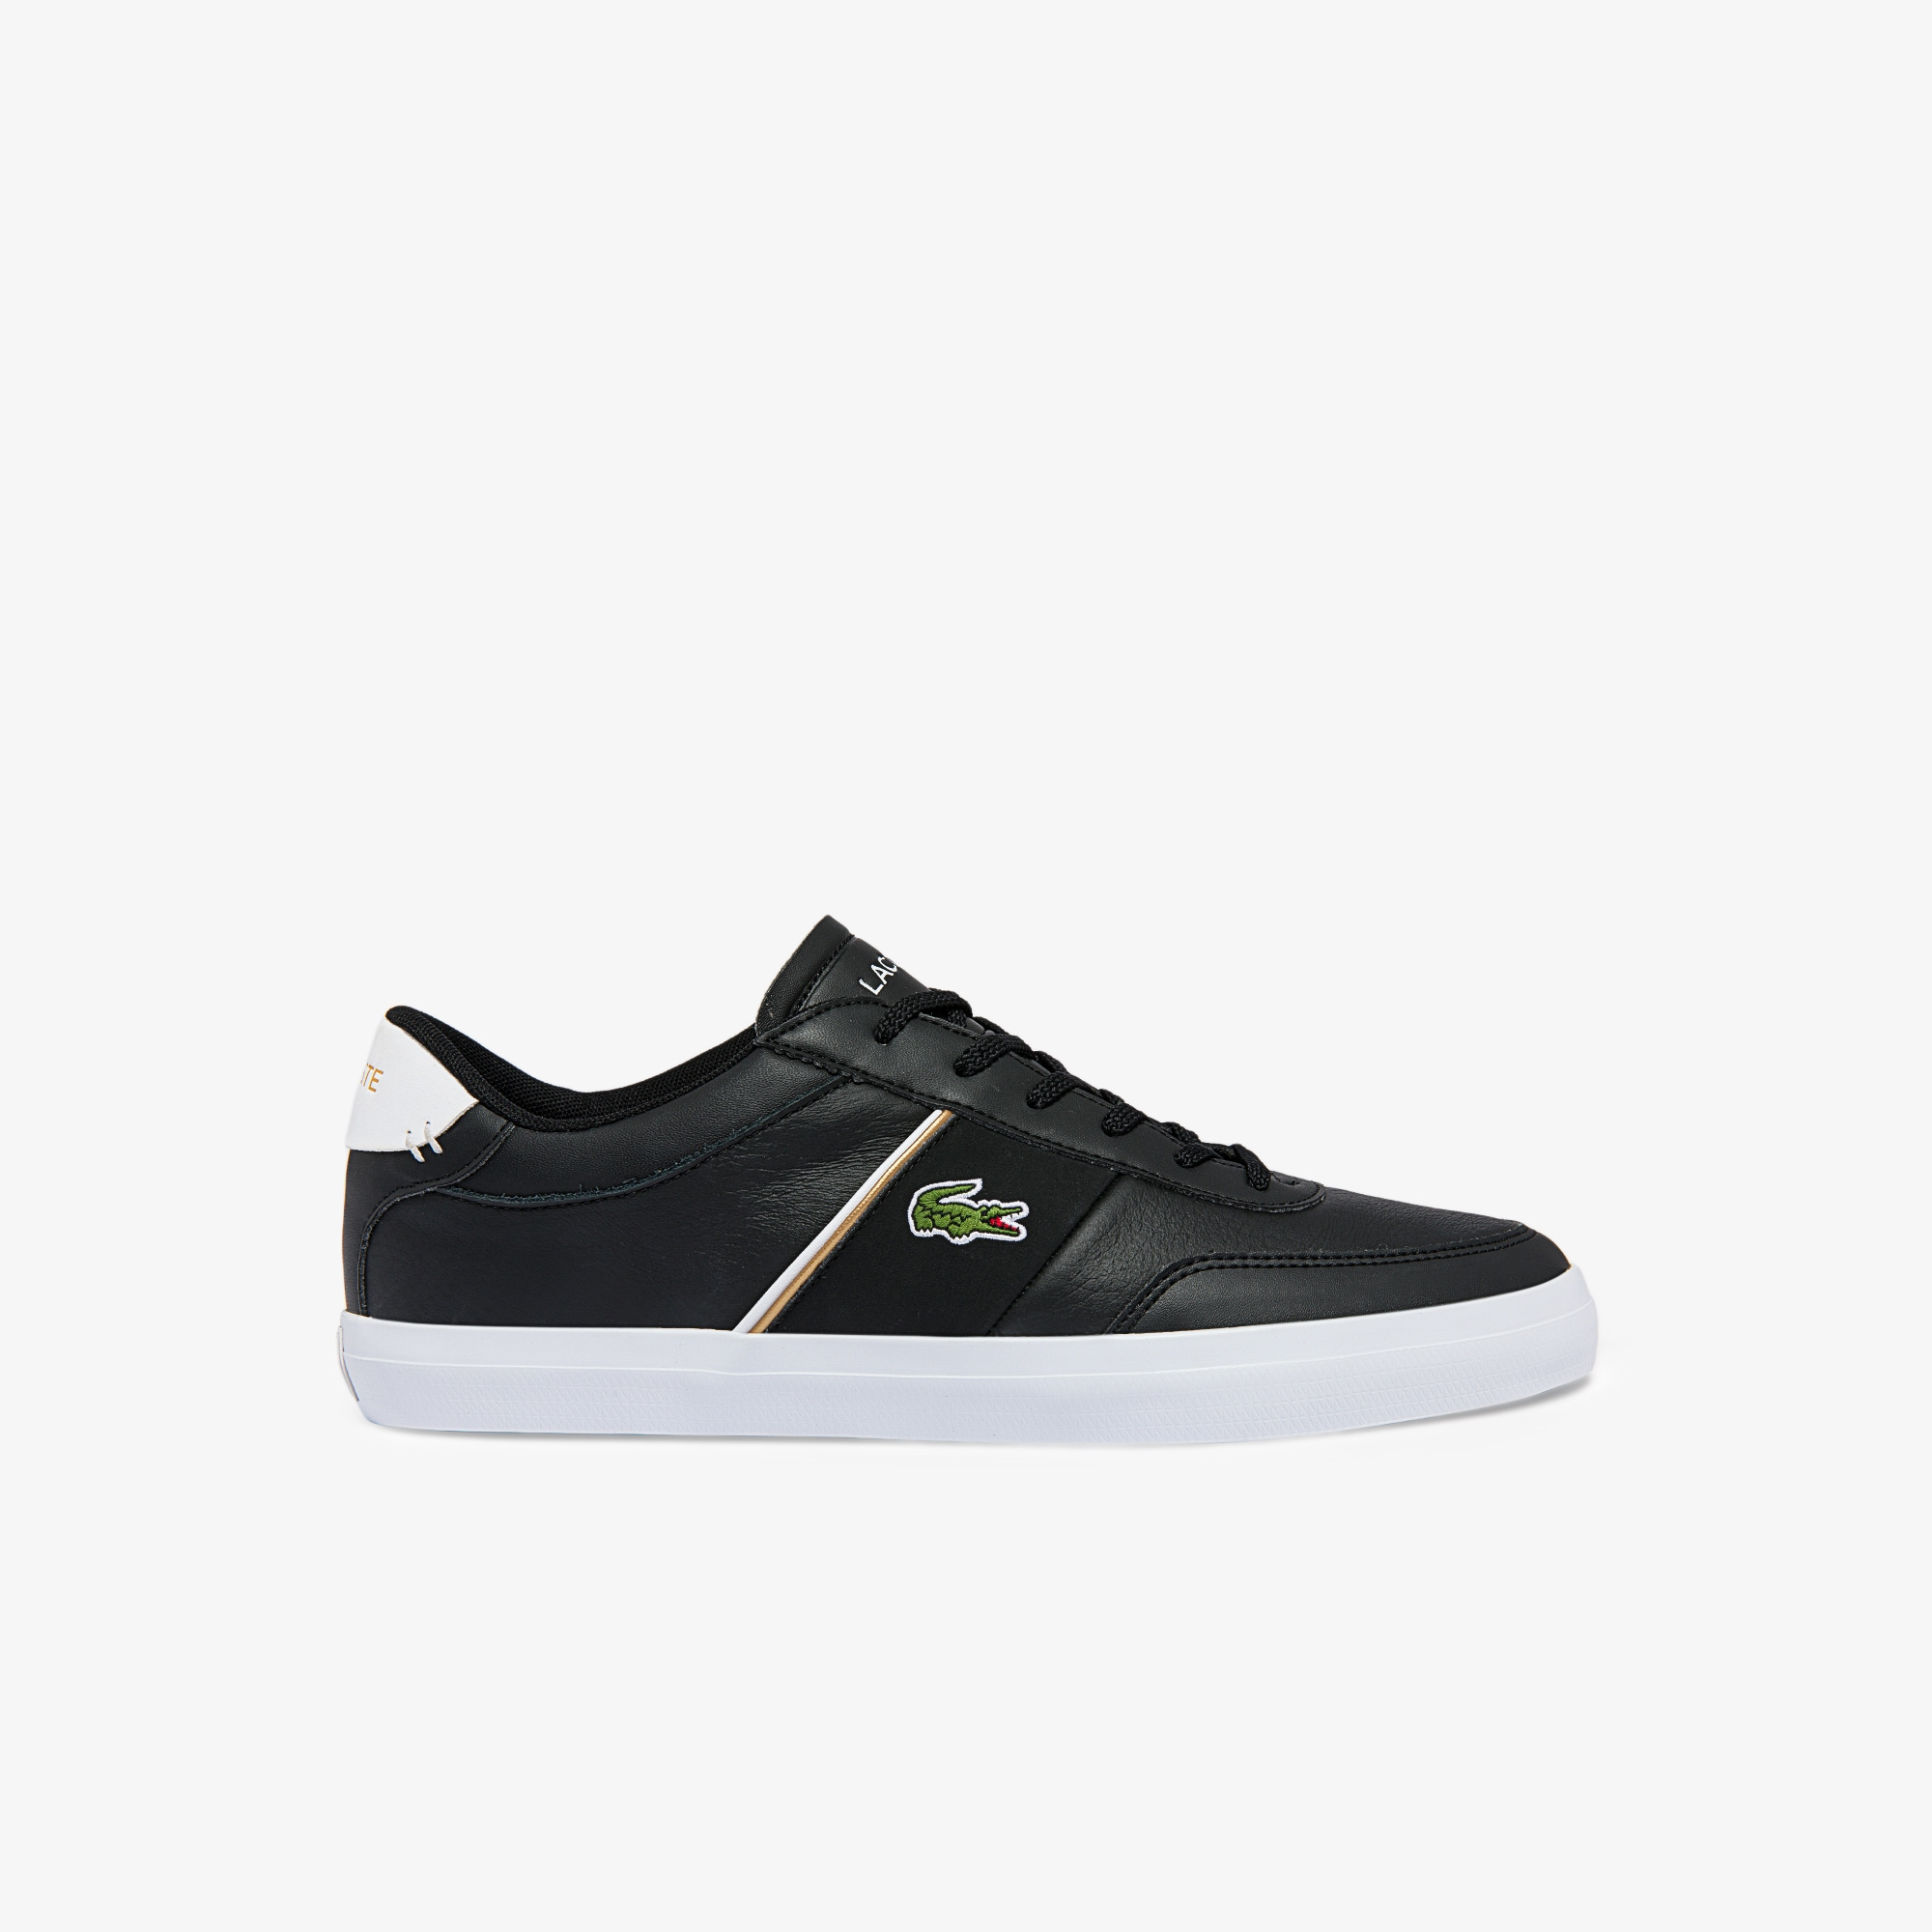 5d64545395b1 Chaussures homme   Collection Homme   LACOSTE